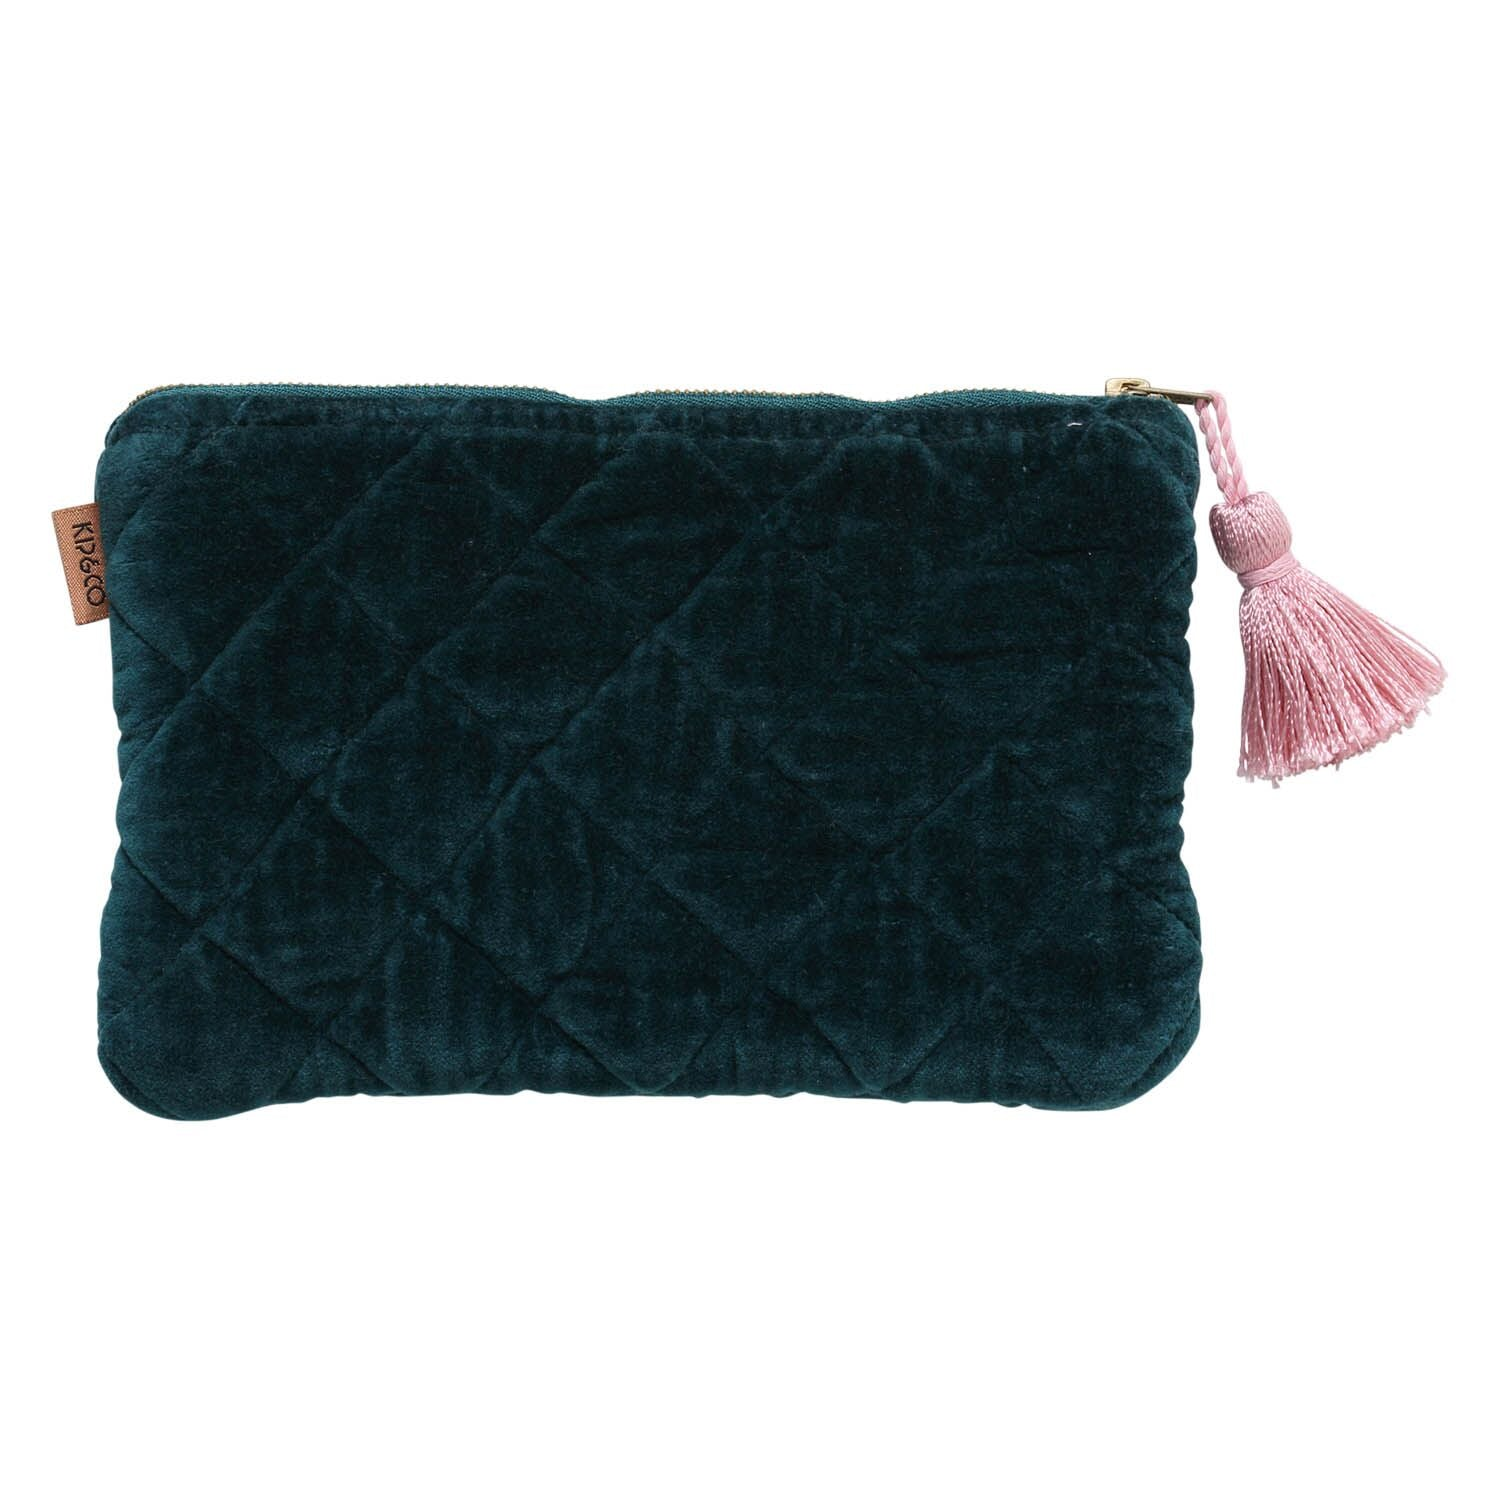 Kip & Co Velvet Quilted Cosmetic Bag - The Artisan Storeroom